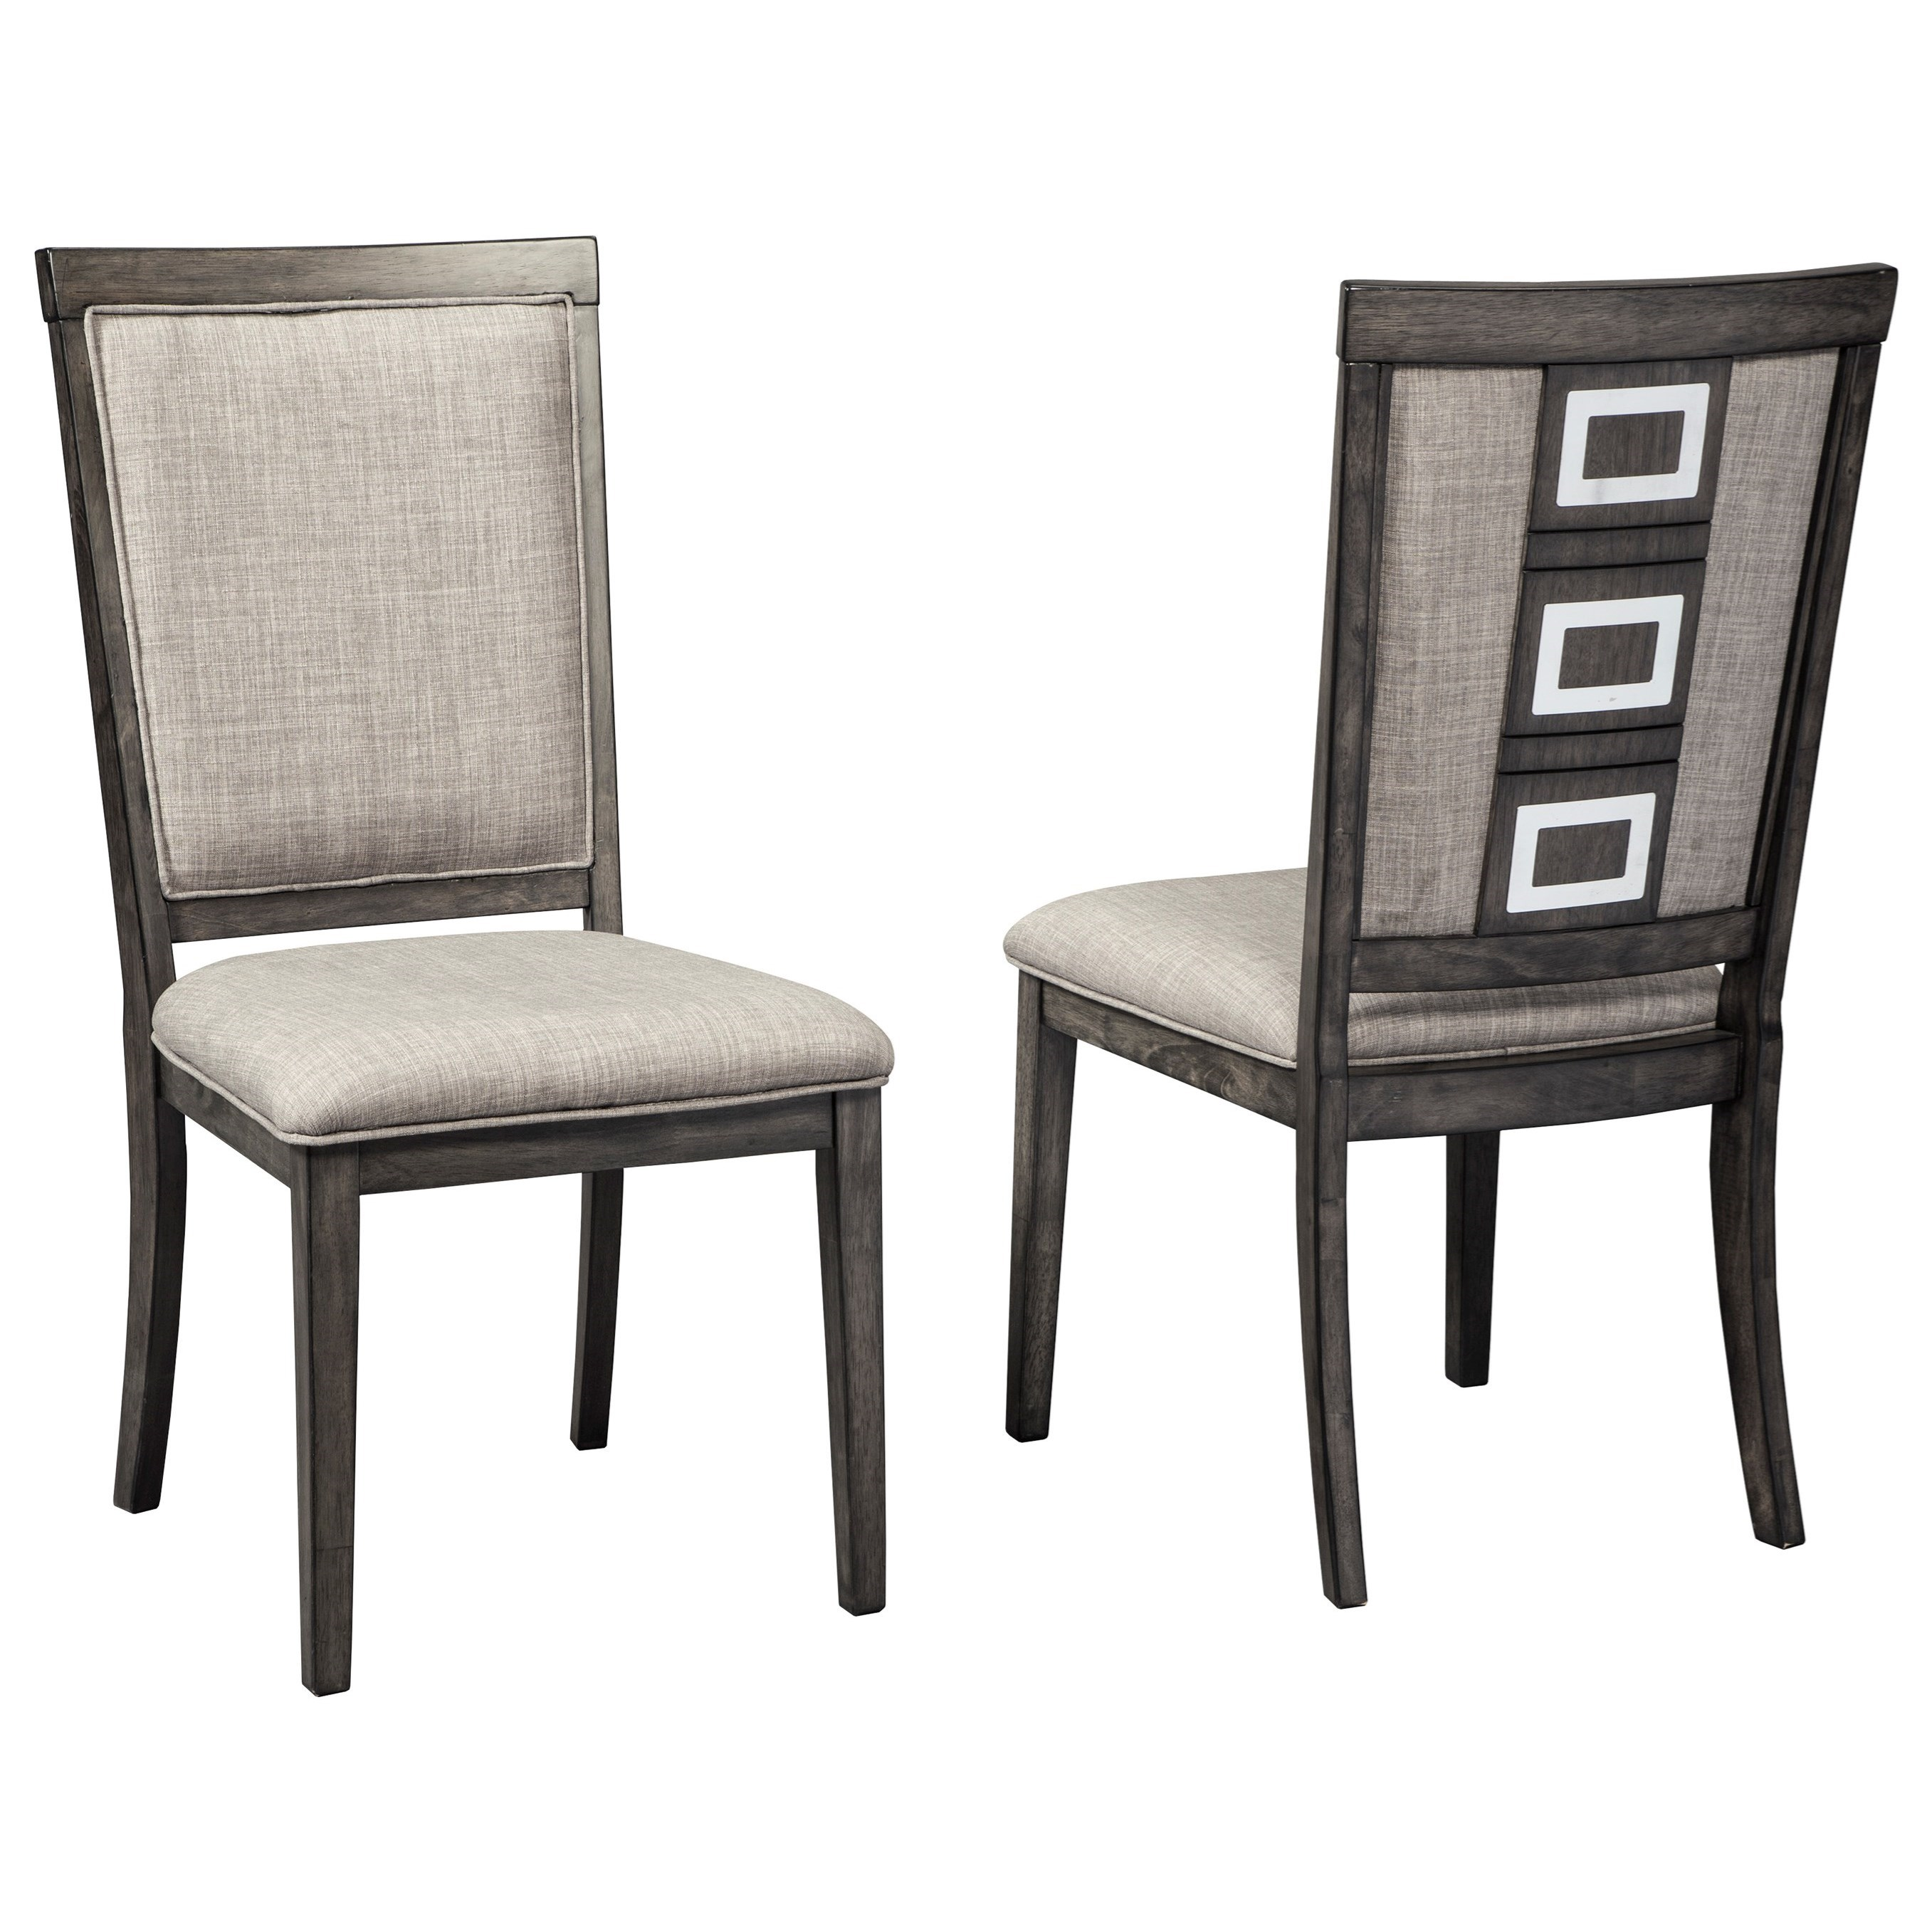 signature design by ashley chadoni d624 01 contemporary upholstered side chair with metal. Black Bedroom Furniture Sets. Home Design Ideas